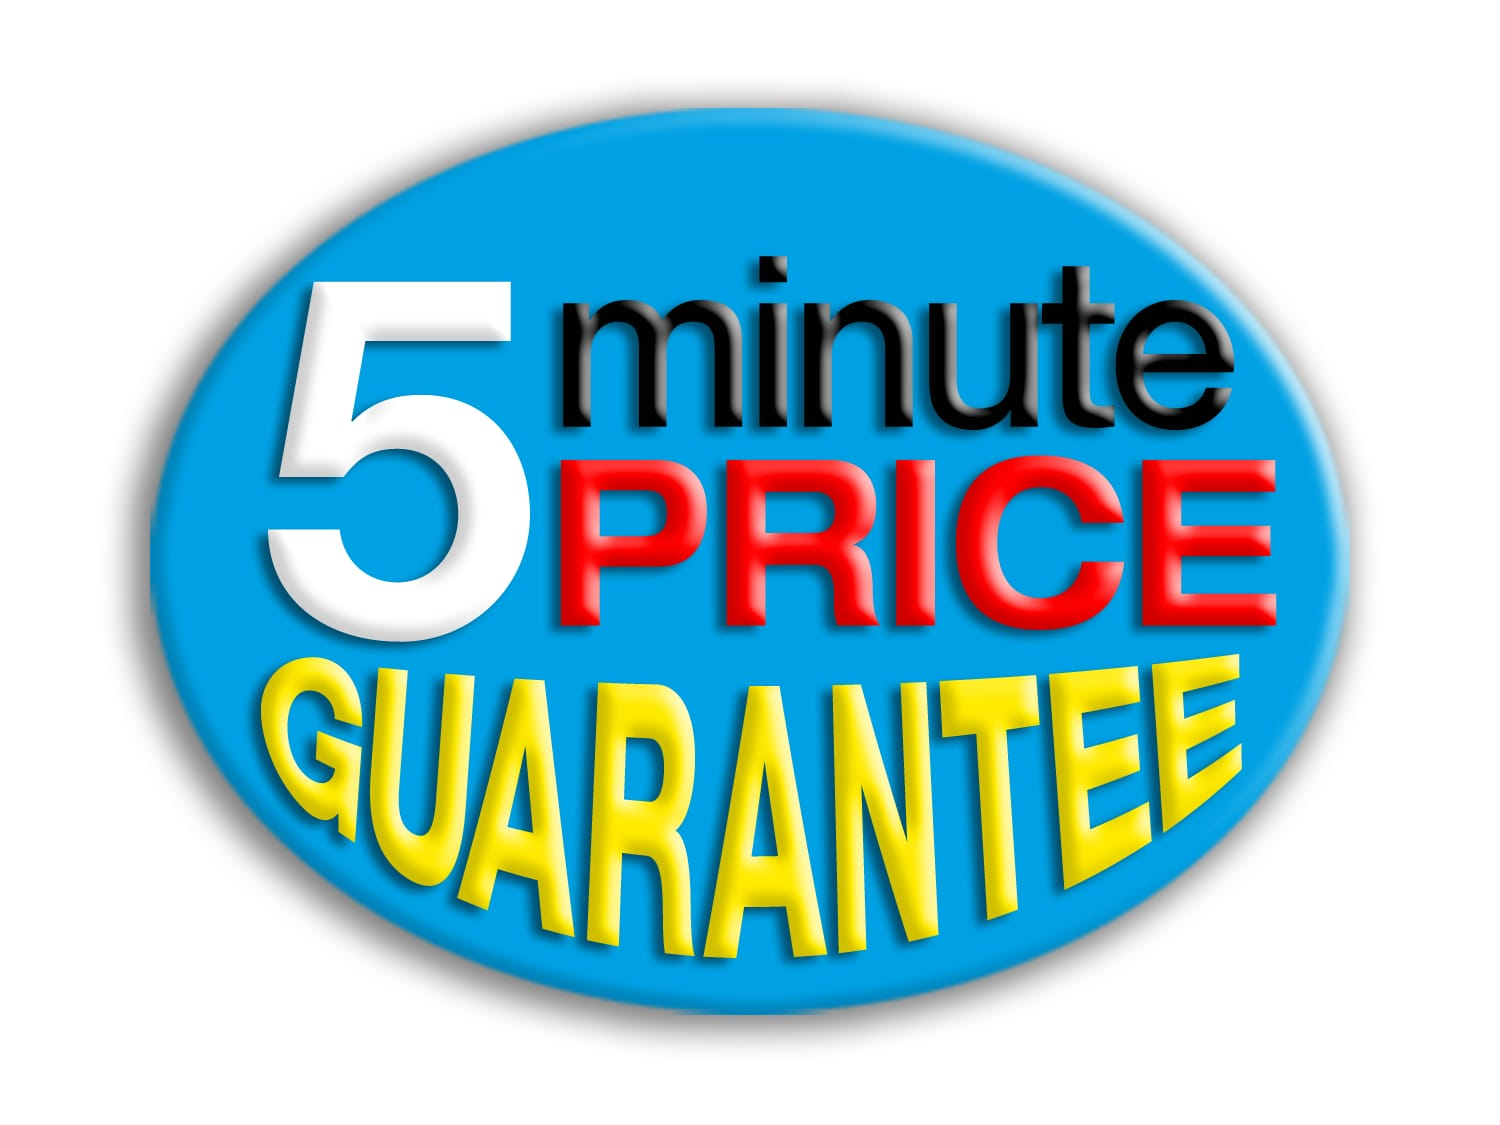 Connors 5 minute Price Guarantee (1).png